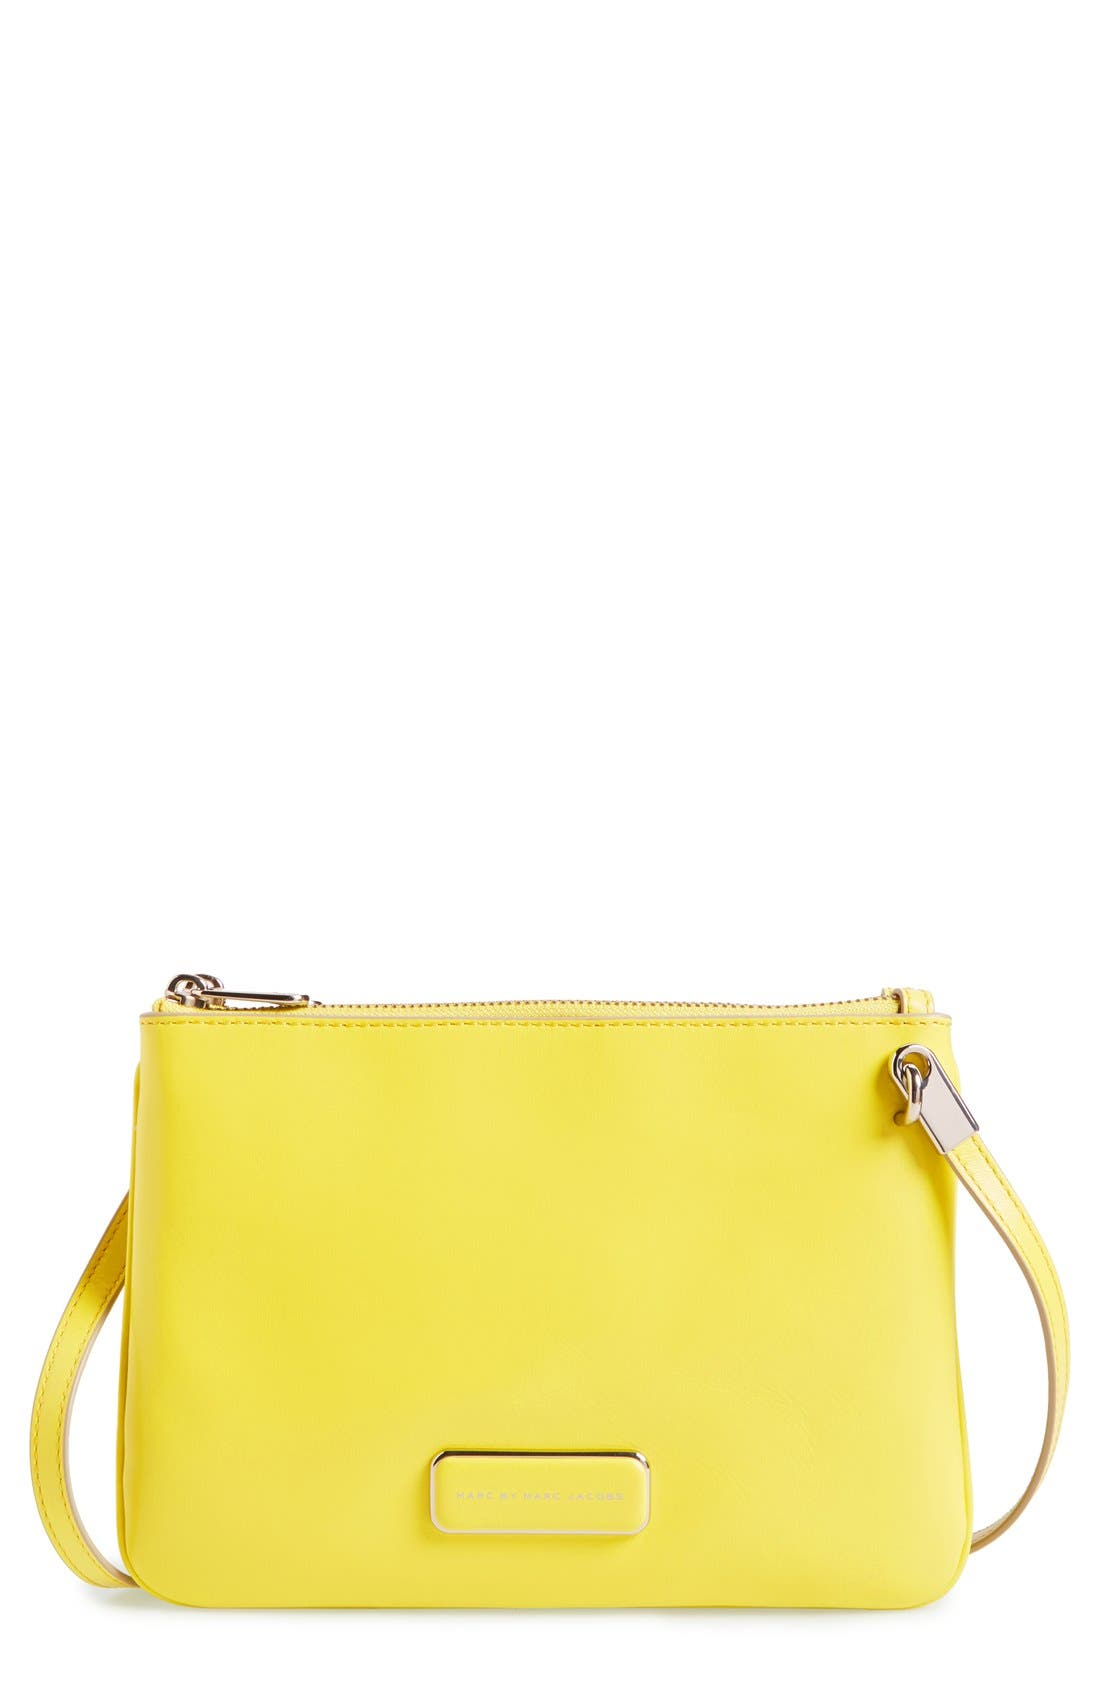 Main Image - MARC BY MARC JACOBS 'Double Percy' Crossbody Bag